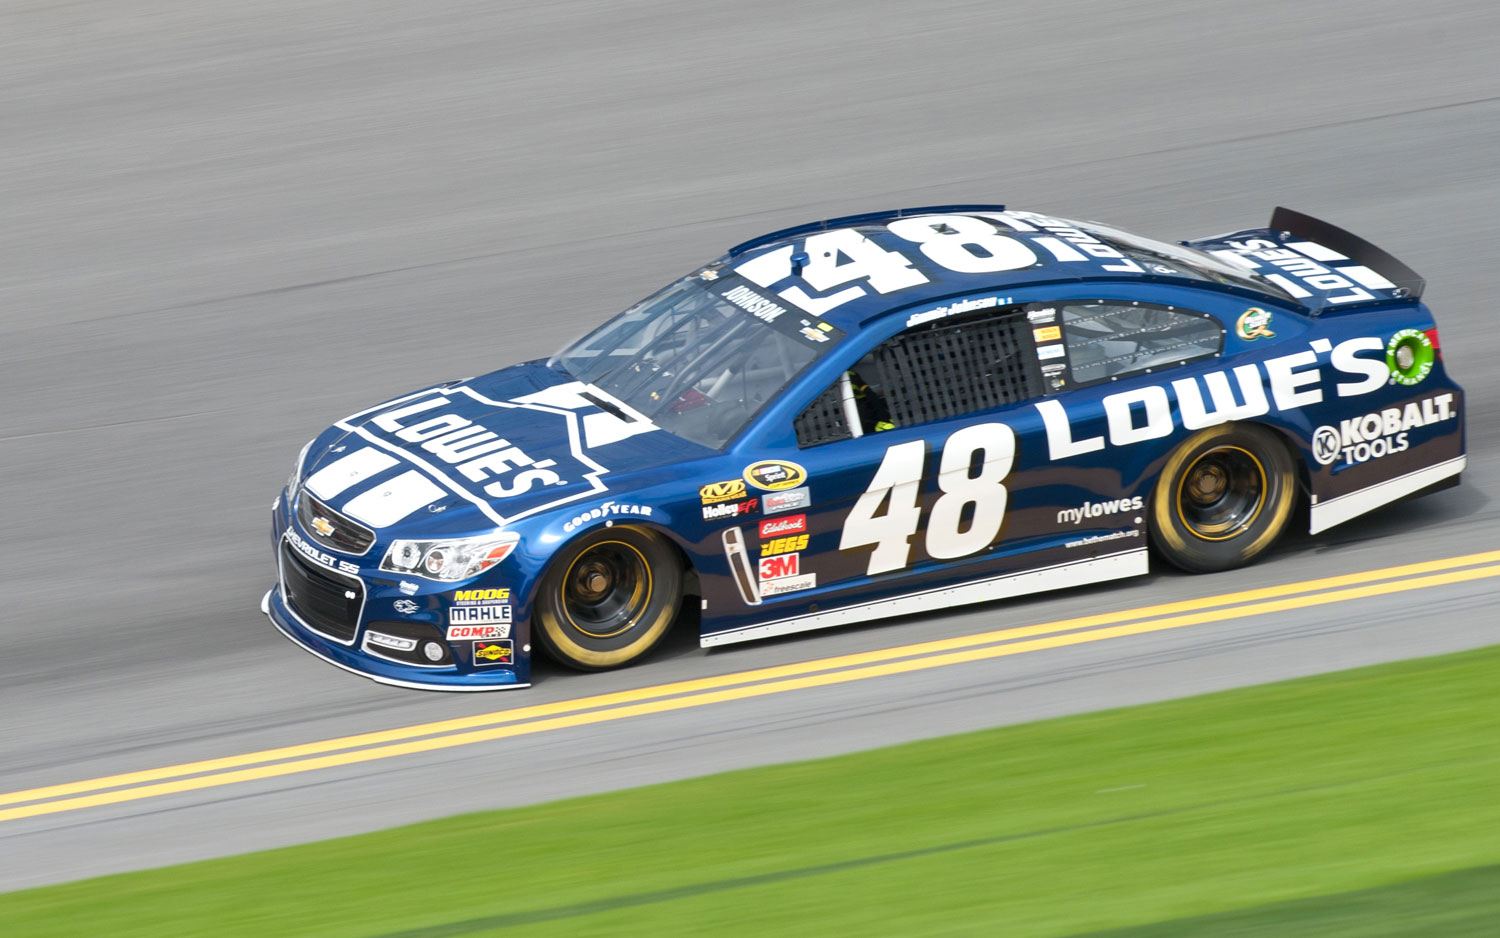 Jimmie-Johnson-Daytona-500-Chevrolet-SS-On-Track